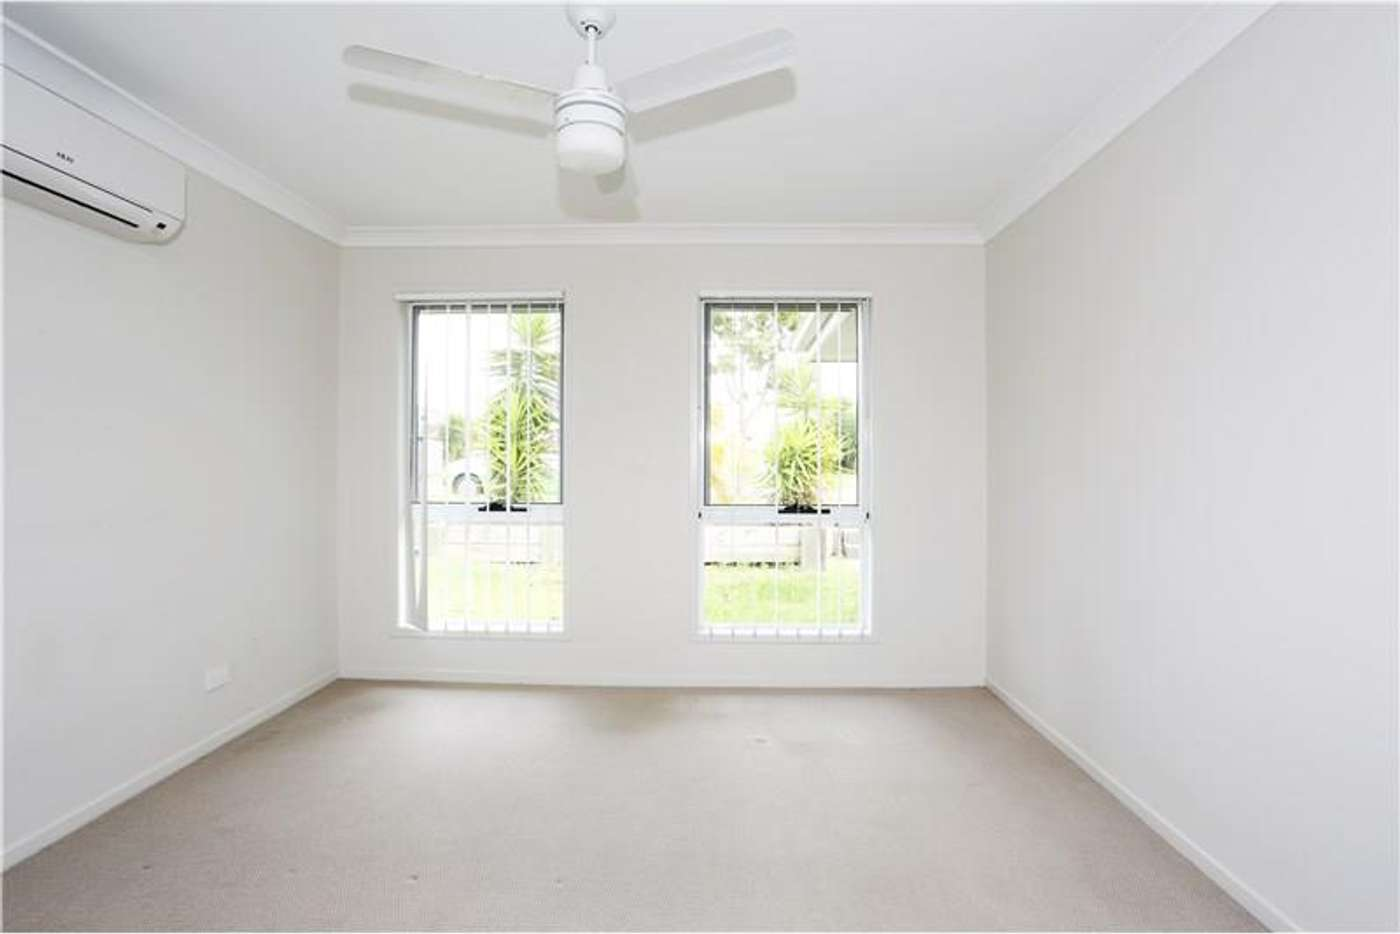 Sixth view of Homely house listing, 9 Carnarvon Court, Pimpama QLD 4209